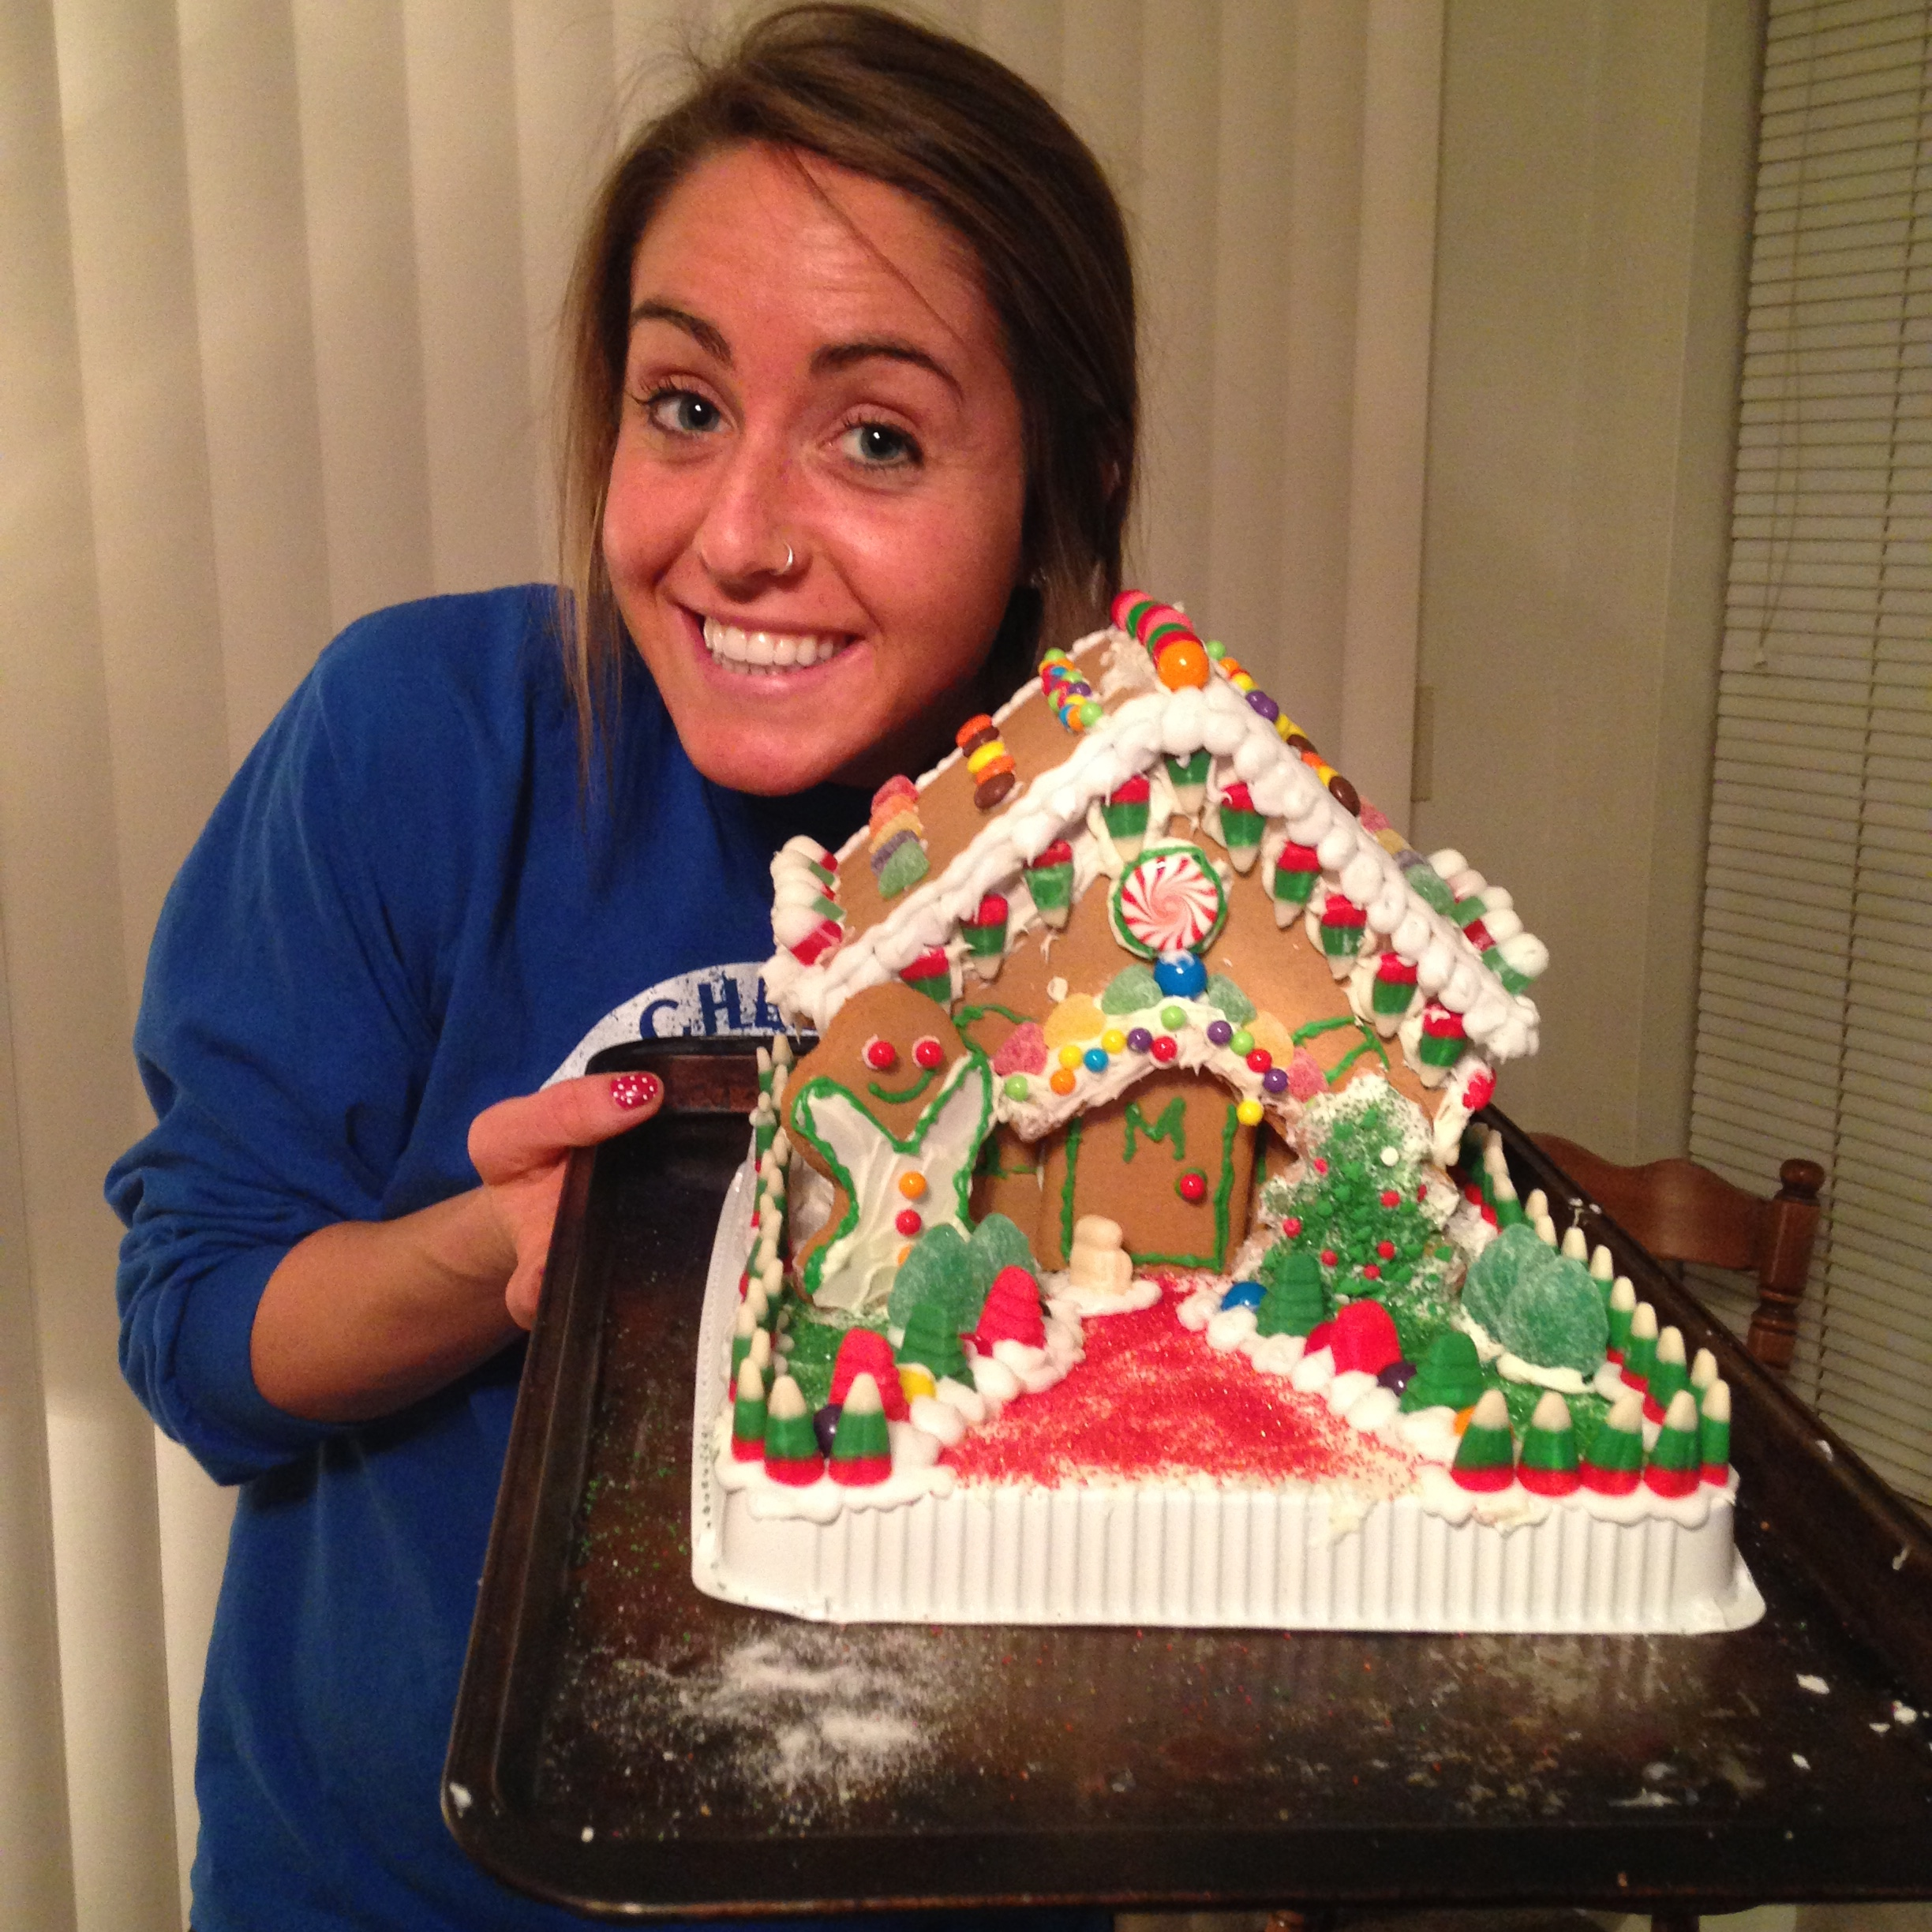 ((We learned how hard it was to make a gingerbread house))